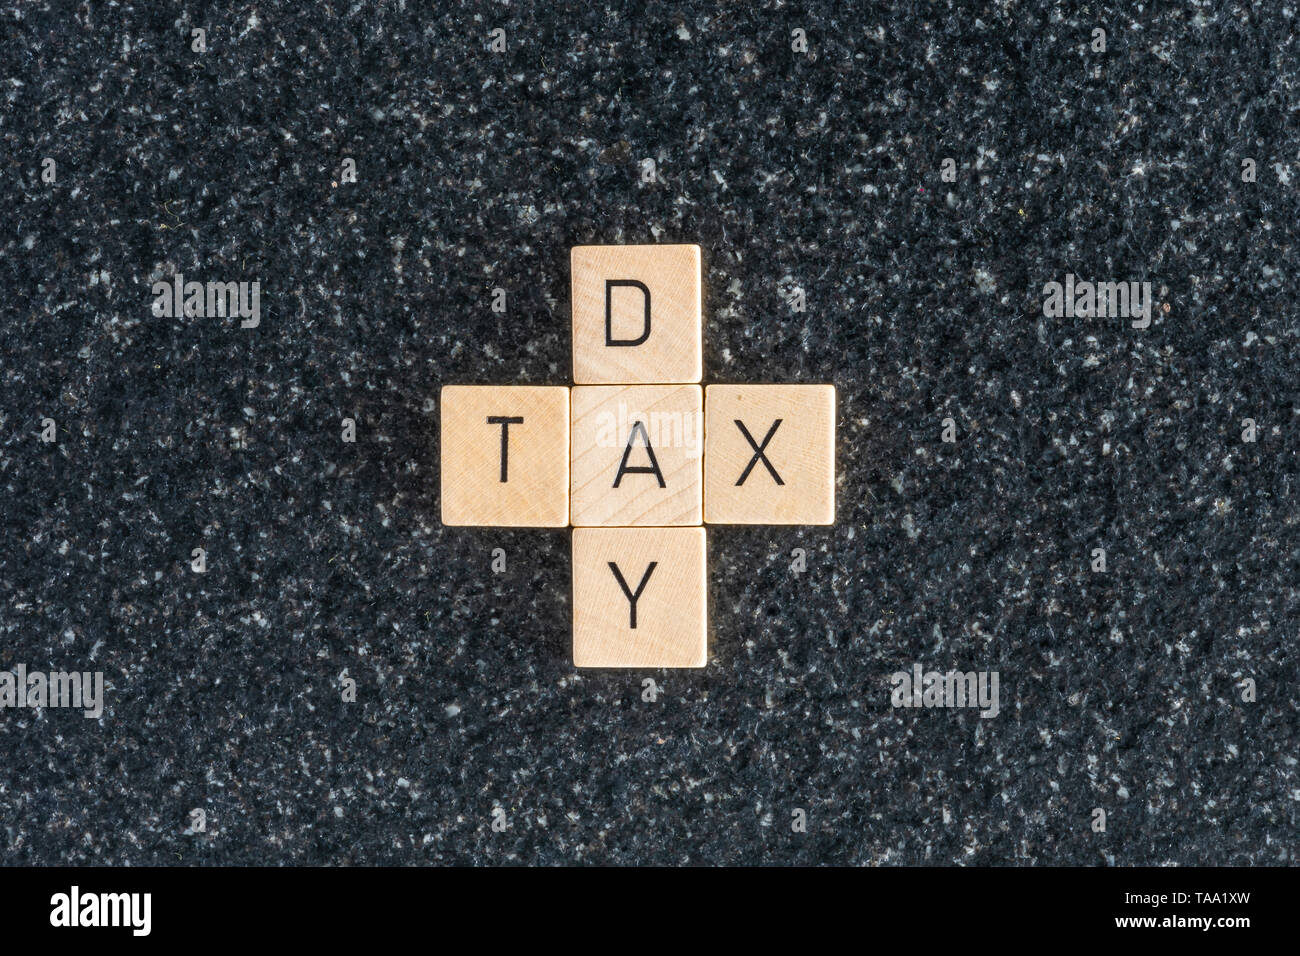 Wood letters forming tax day cross on a black table background. The deadline to pay taxes. - Stock Image